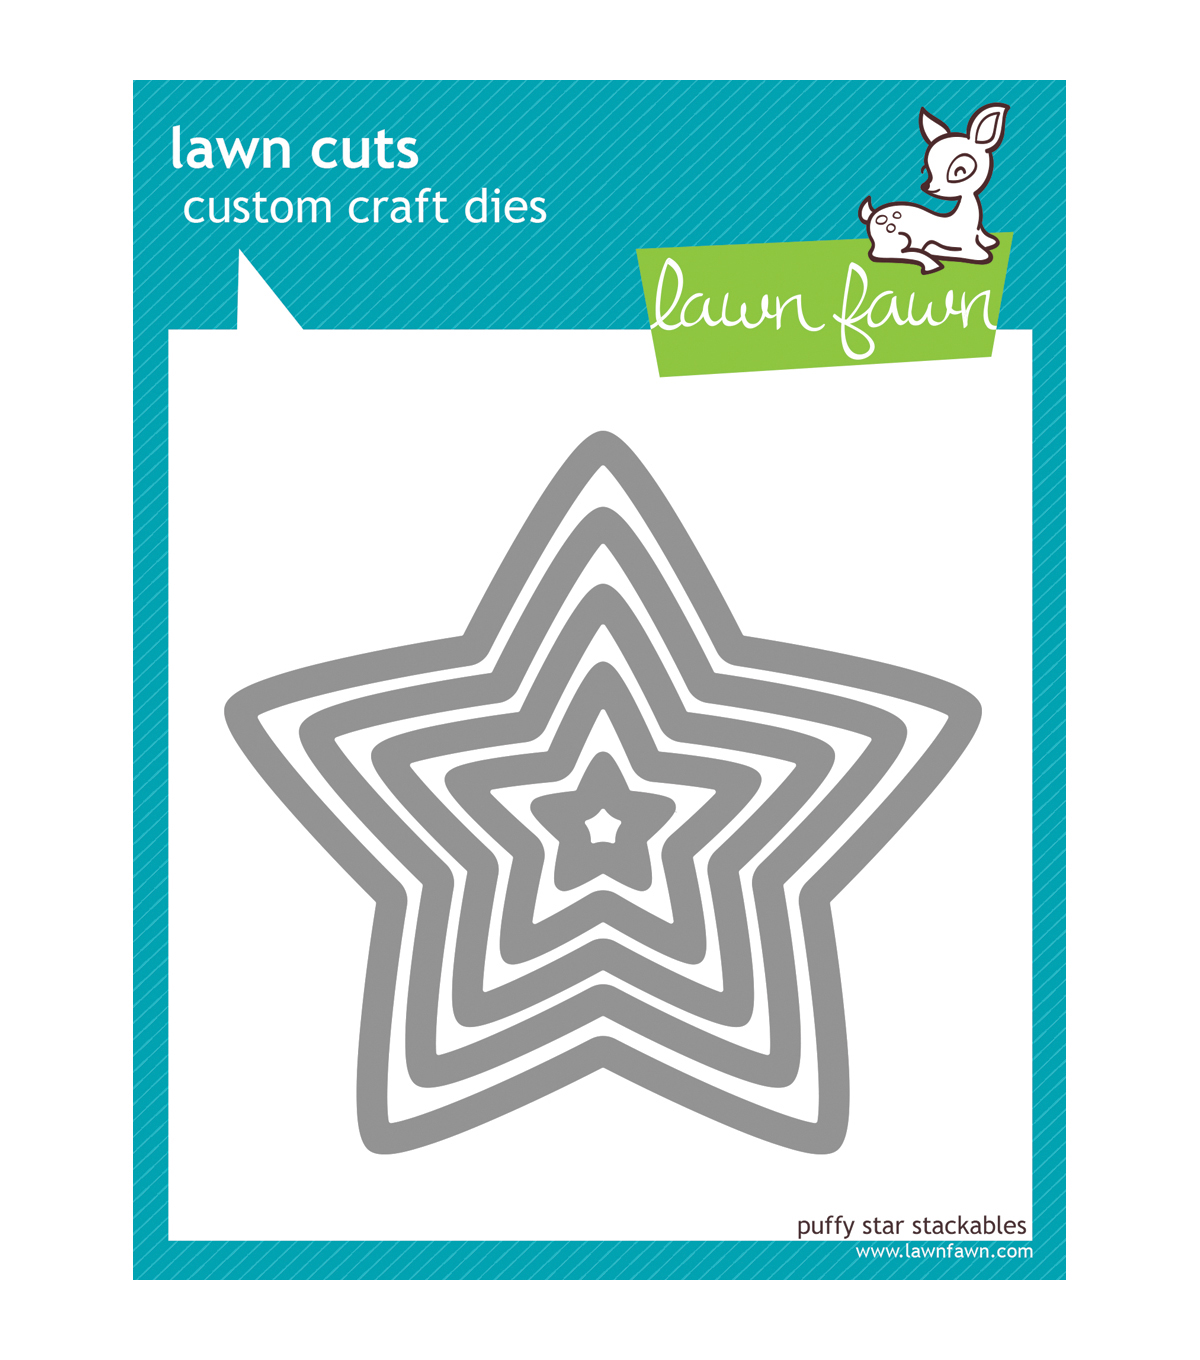 Lawn Fawn Lawn Cuts Custom Craft Die-Puffy Star Stackables